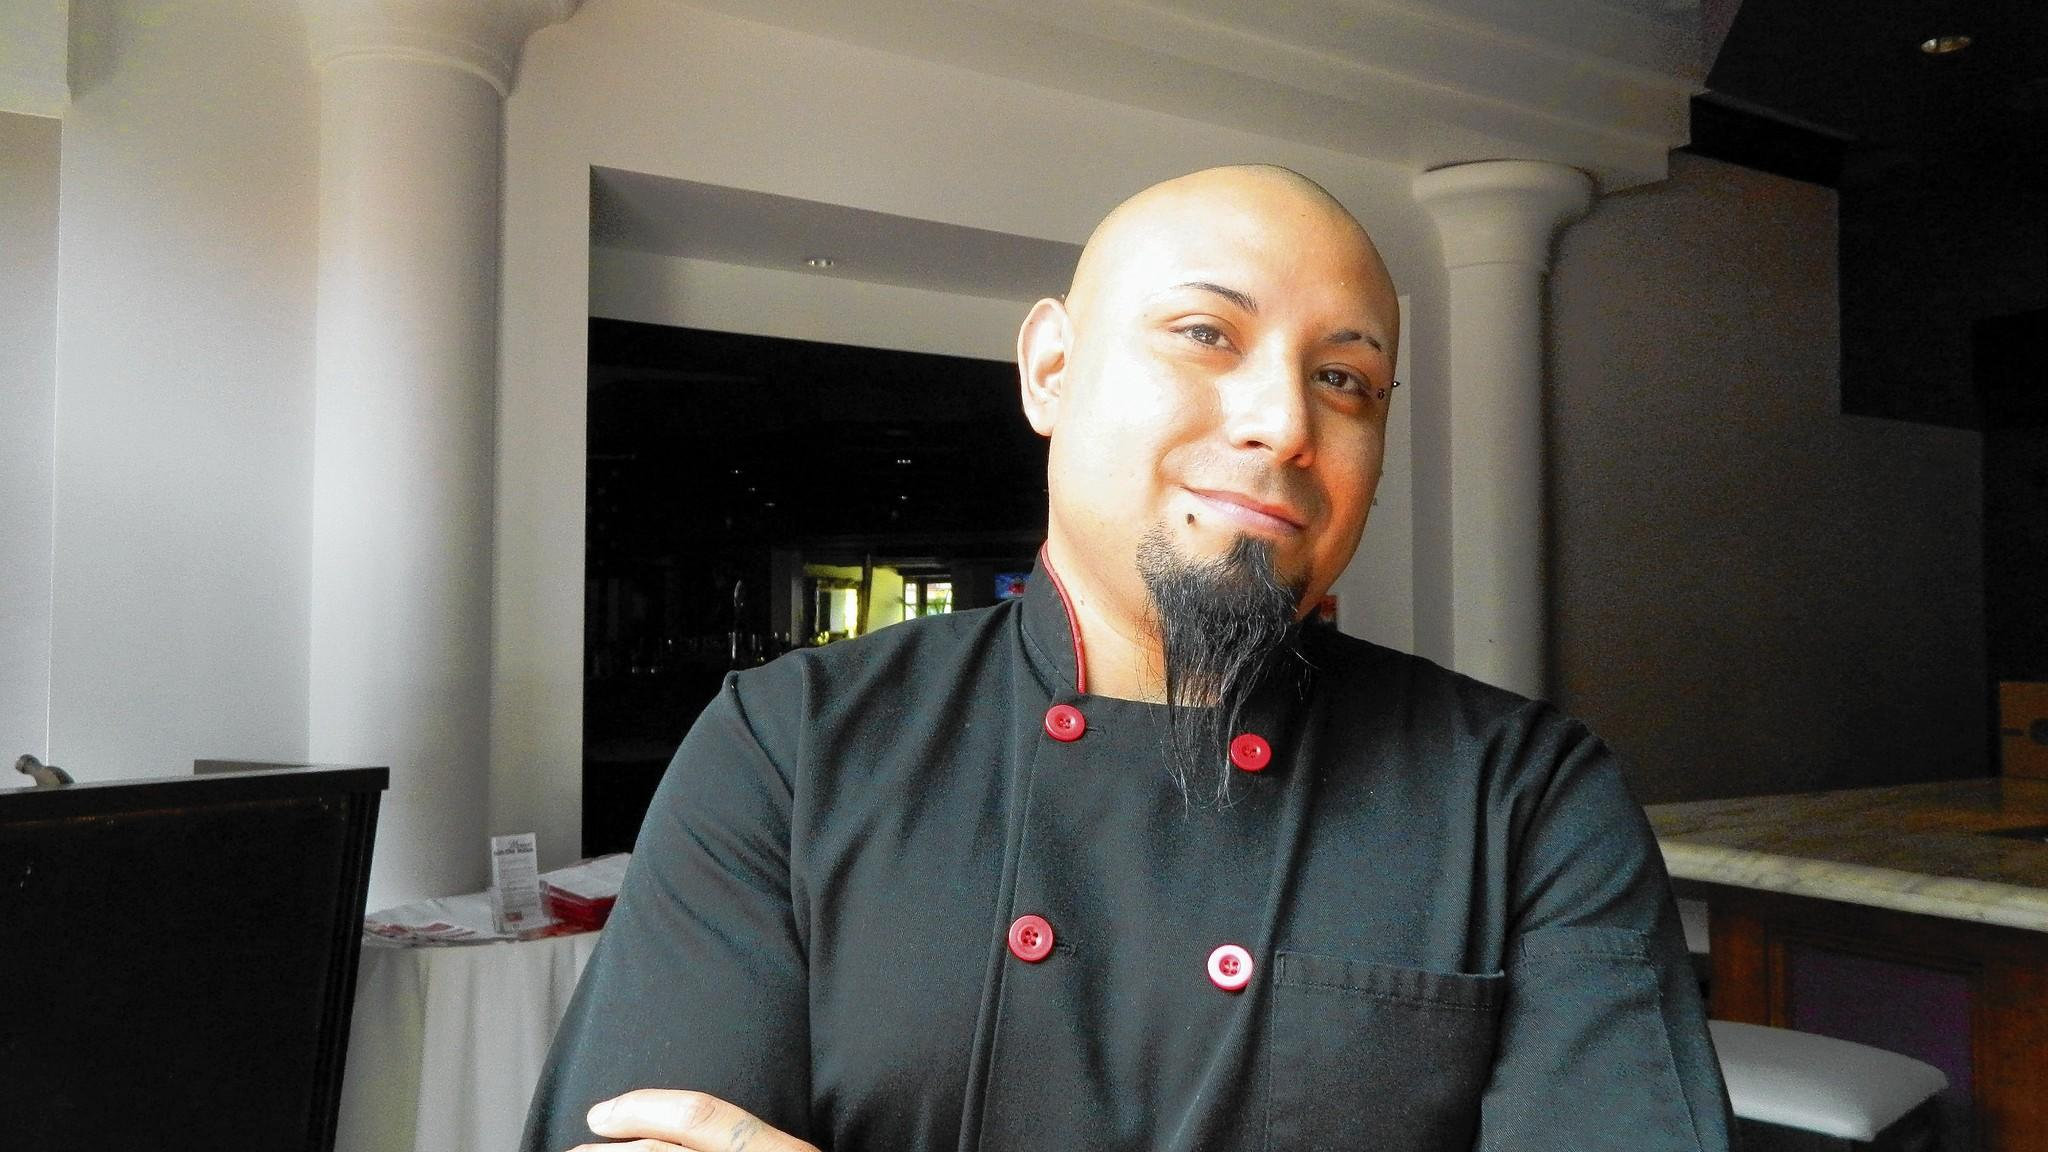 Gerardo Gonzales, executive chef of Fells Point restaurants Tapas Adela and Anastasia.